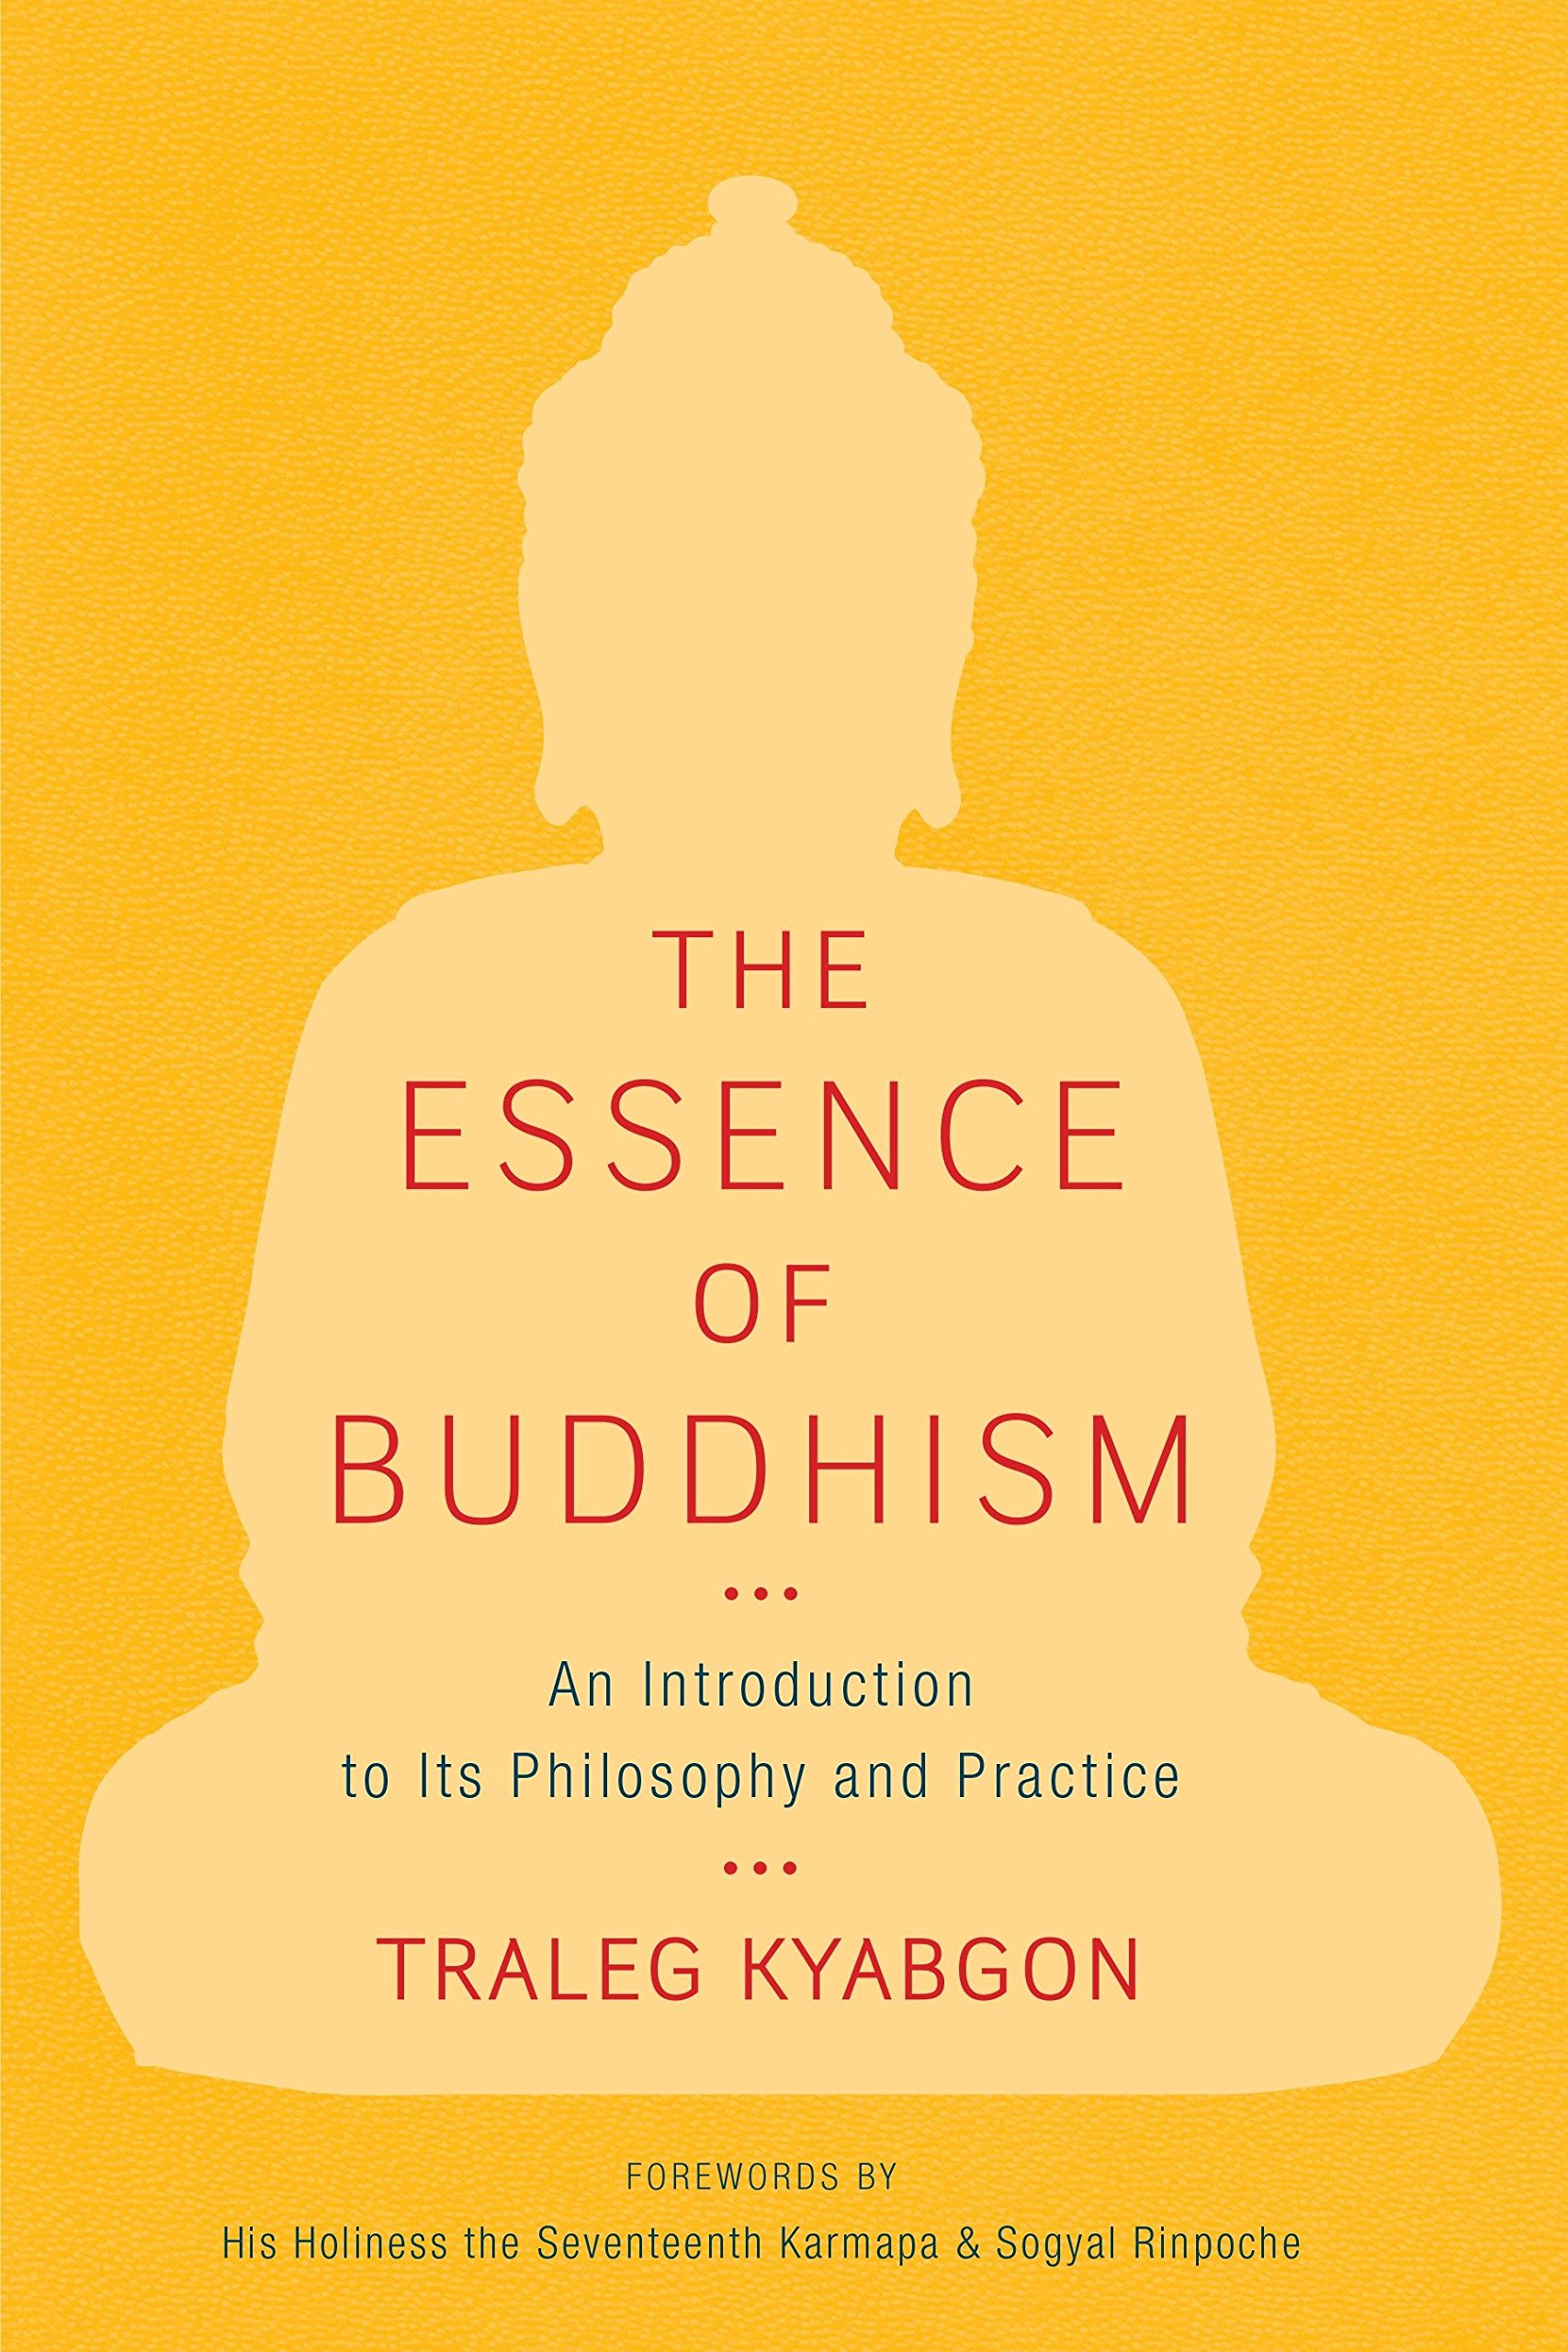 Download The Essence of Buddhism: An Introduction to Its Philosophy and Practice (Shambhala Dragon Editions) ebook